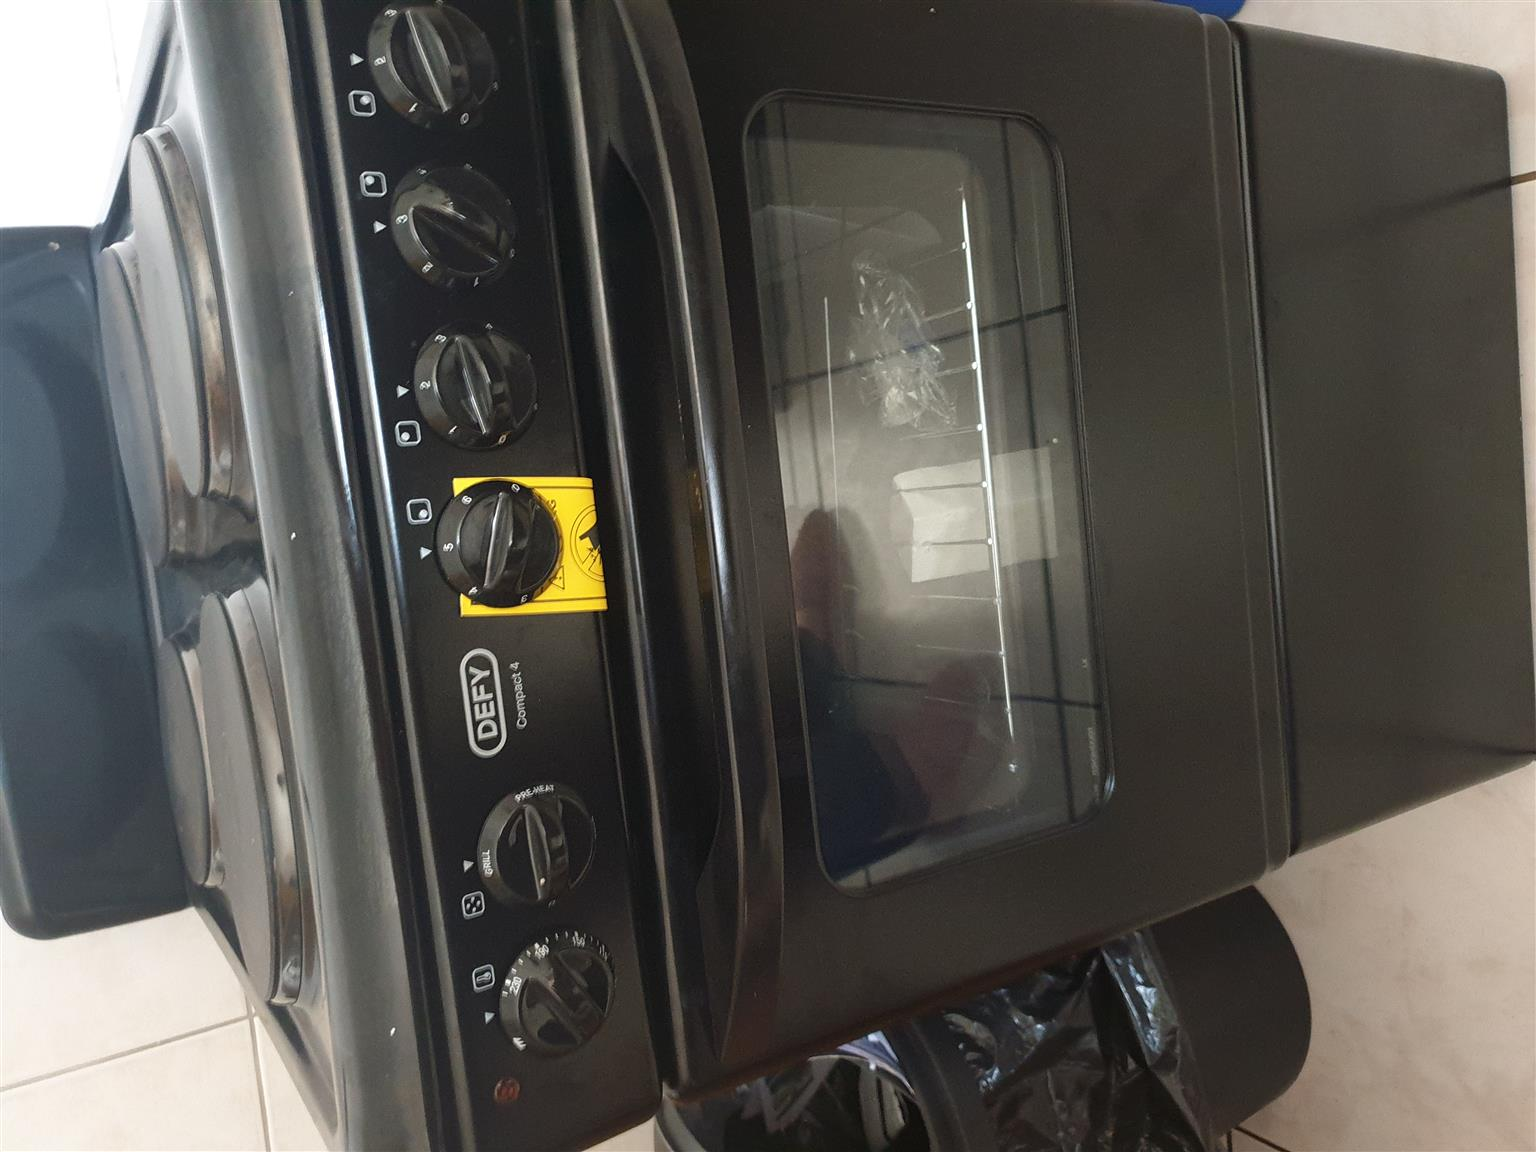 Defy stove and oven brand new